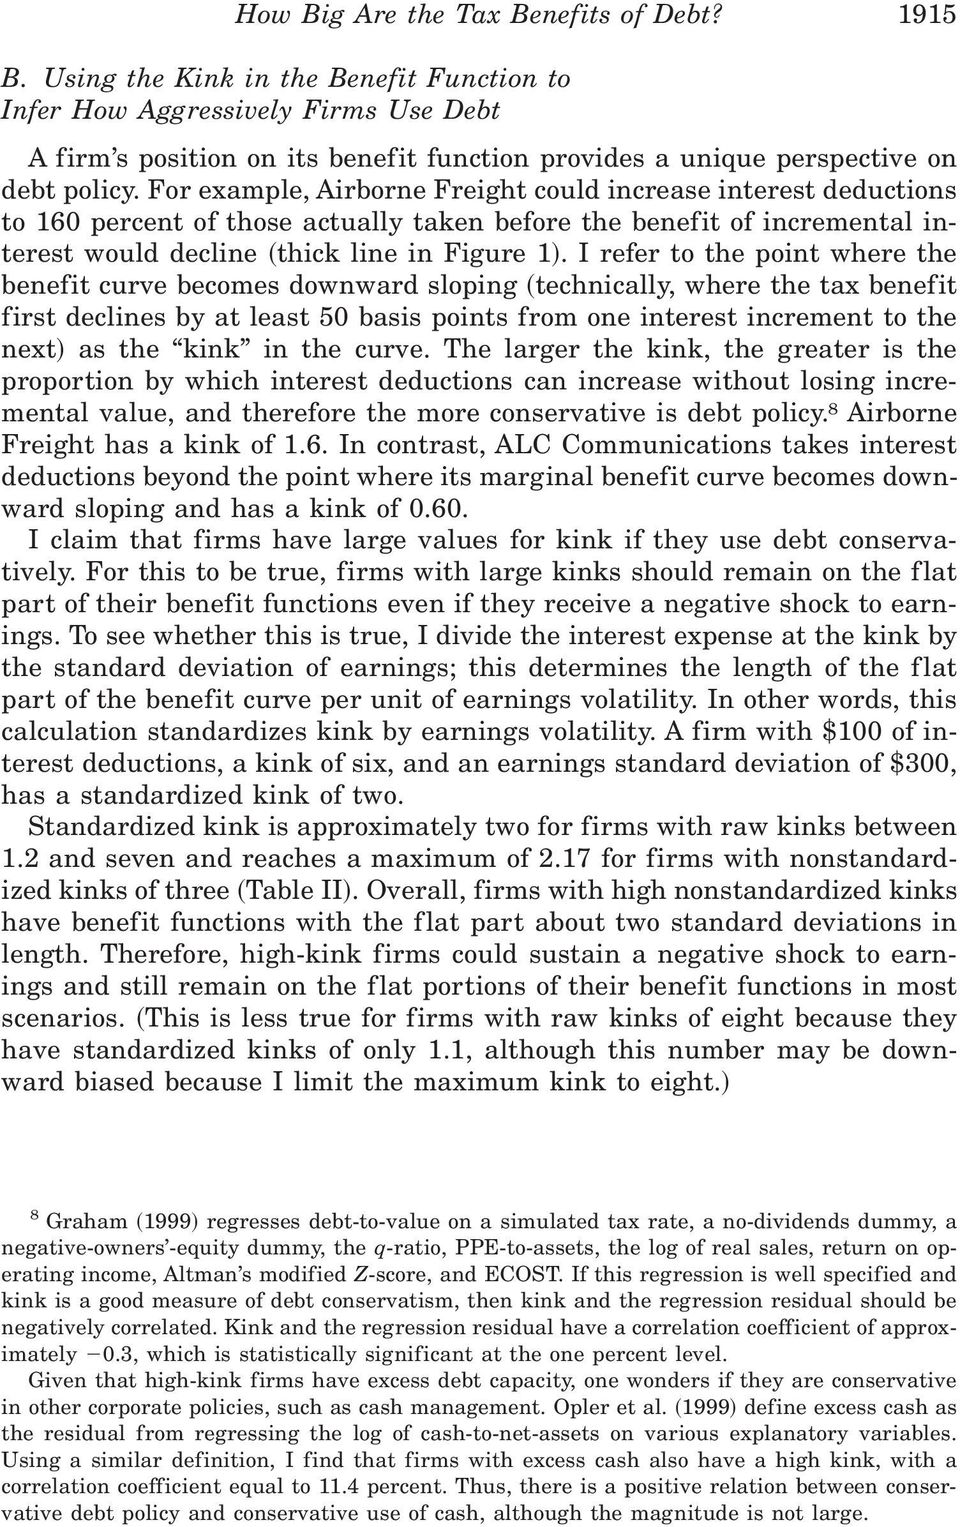 For example, Airborne Freight could increase interest deductions to 160 percent of those actually taken before the benefit of incremental interest would decline ~thick line in Figure 1!